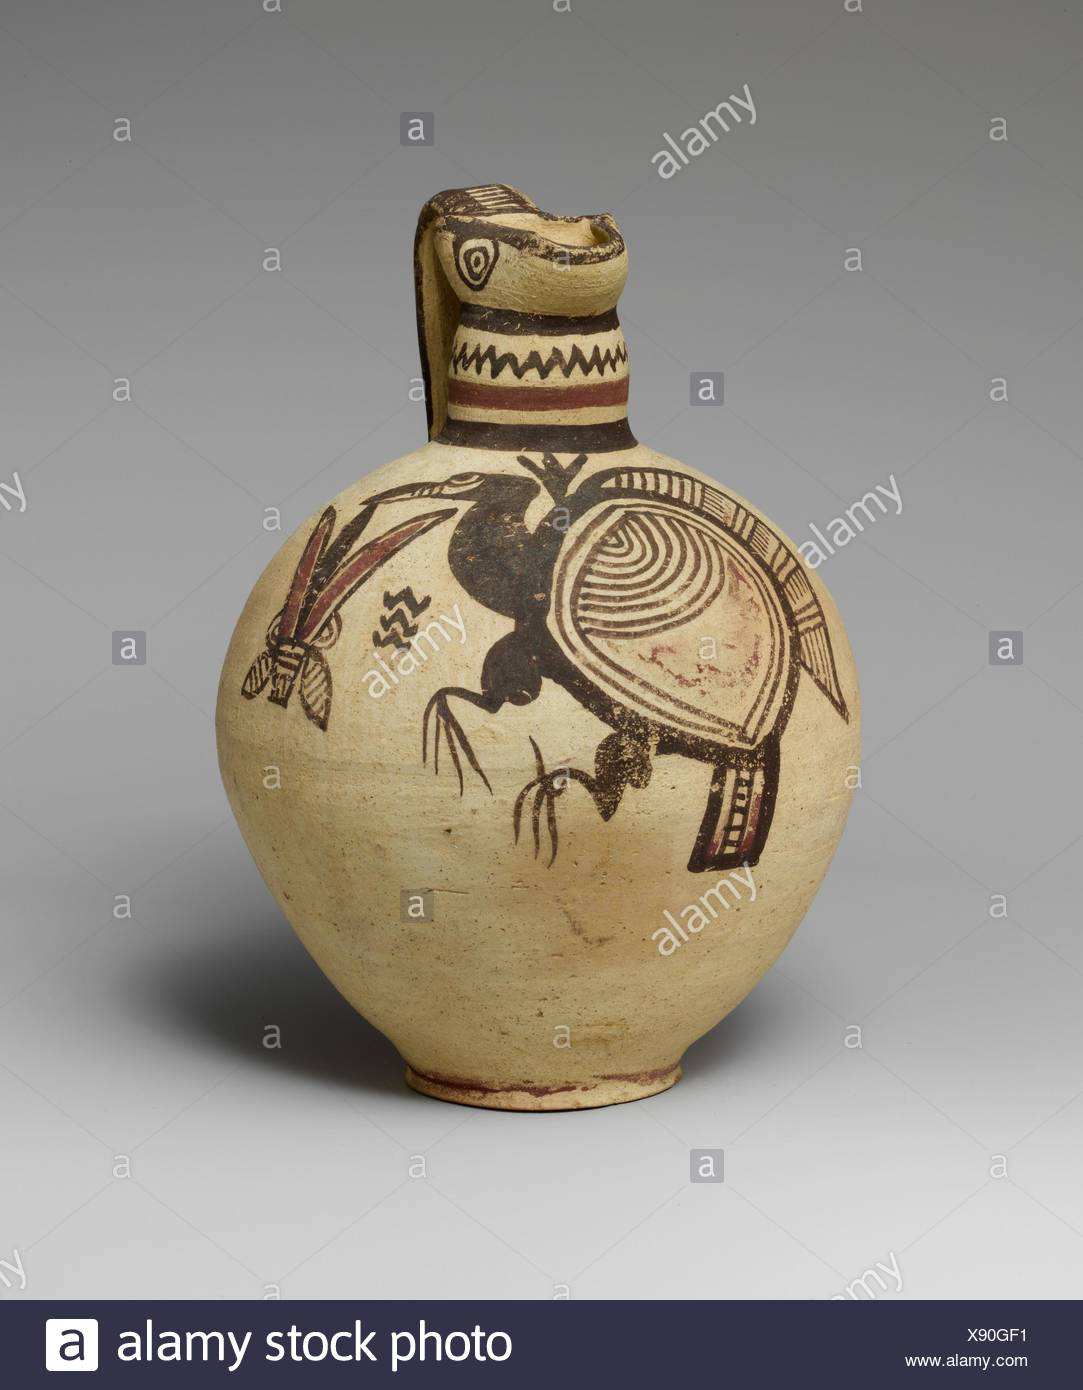 Terracotta jug. Period: Cypro-Archaic I; Date: 750-600 B.C; Culture: Cypriot; Medium: Terracotta; Dimensions: H. 7 5/16 in. (18.5 cm); Stock Photo